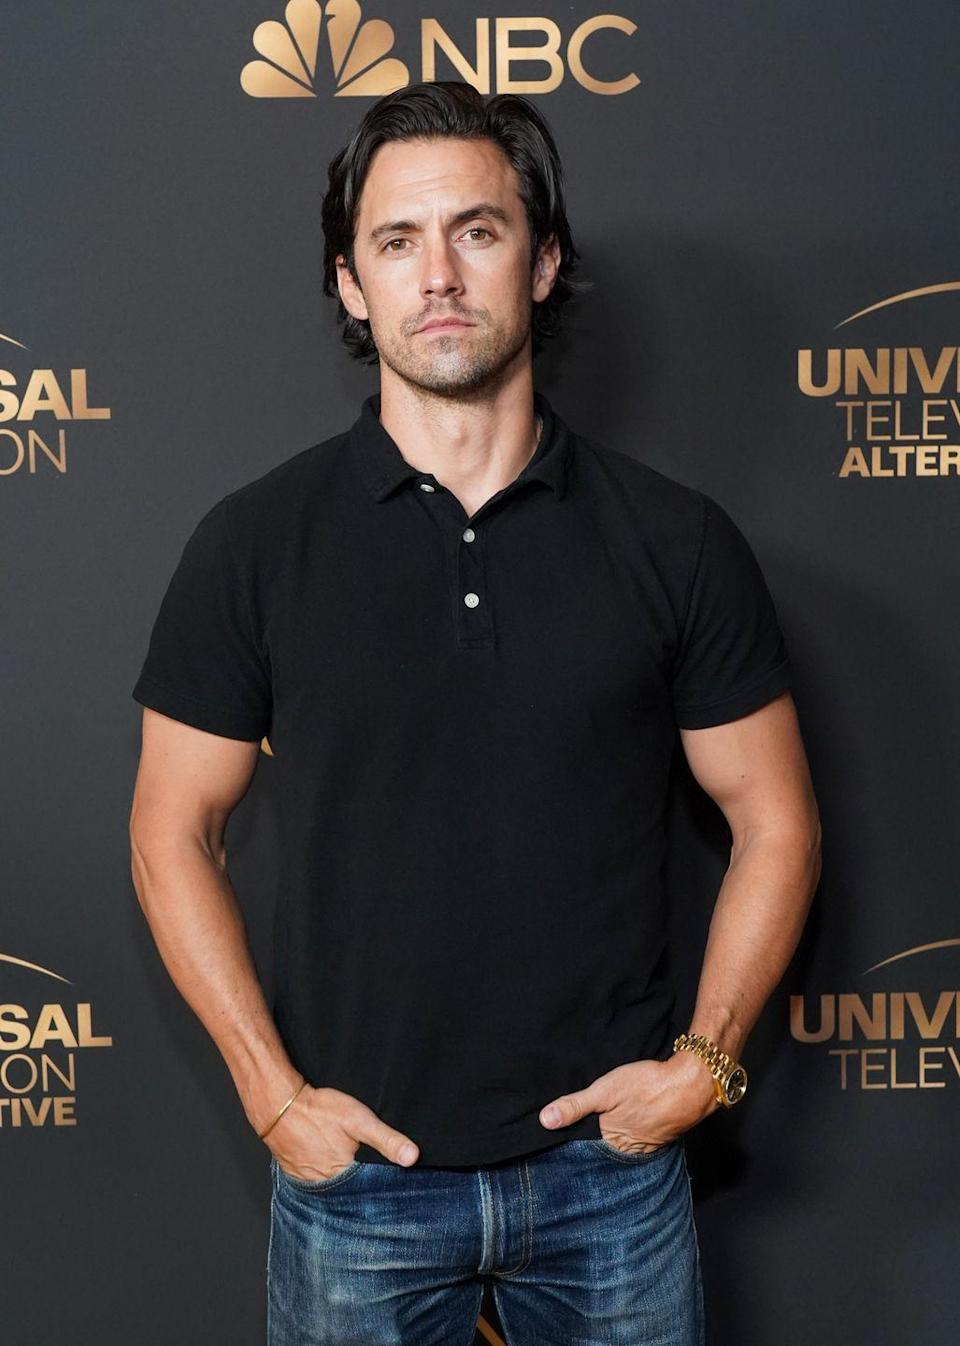 <p>Milo followed up <em>Gilmore Girls</em> with another hit show, <em>Heroes</em>. But his biggest part to date is playing the matriarch of the Pearson family on NBC's hit show <em>This Is Us. </em>He also starred in the film, <em>The Art Of Racing In The Rain. </em></p>